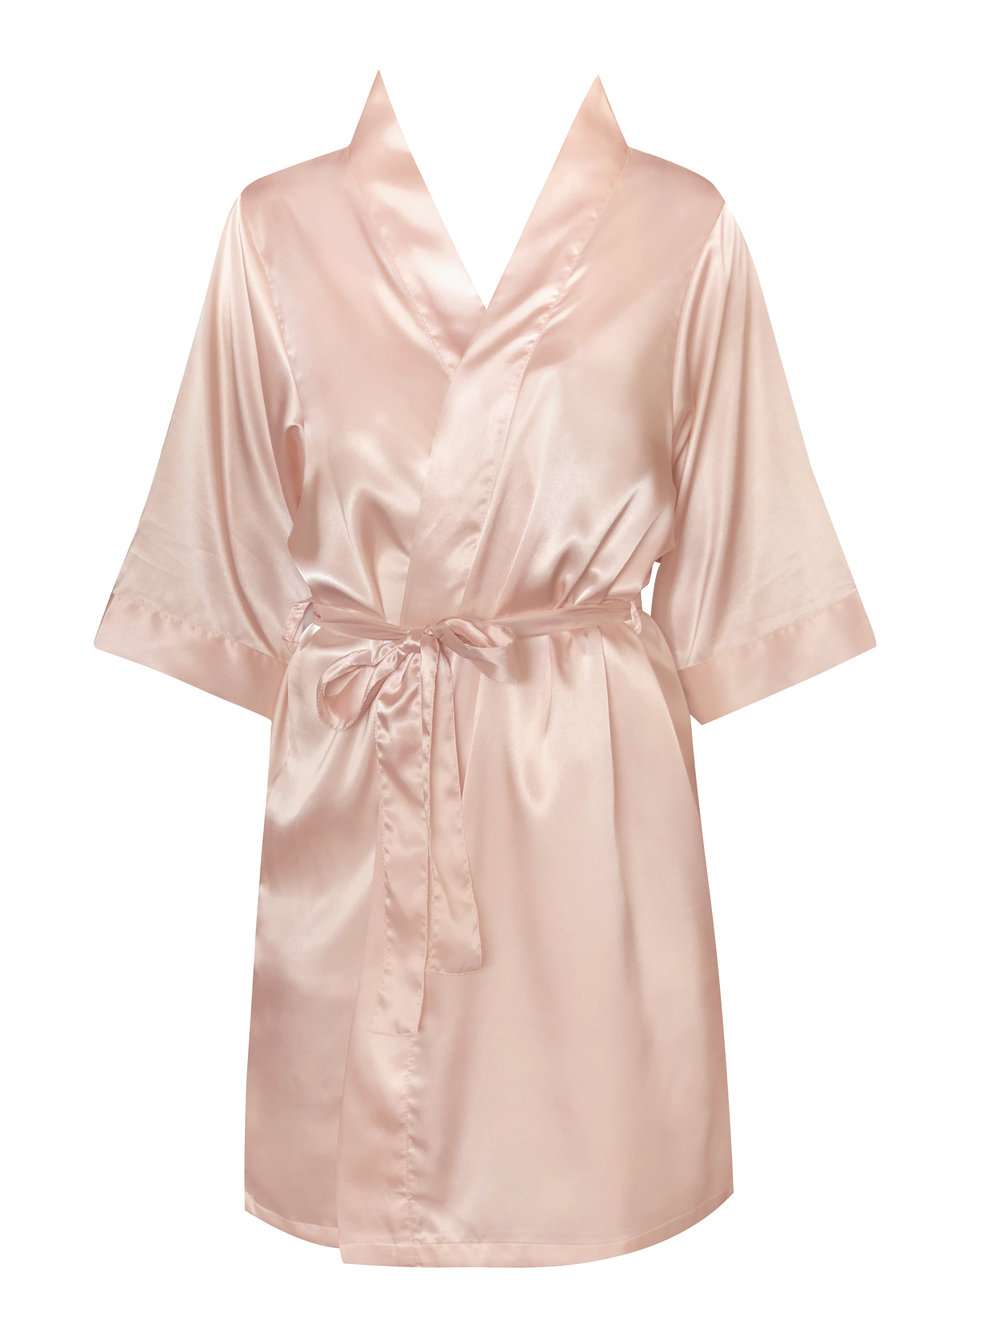 49135c4c2d Personalised Bride and Bridal Party Satin Robe Dressing Gown ...